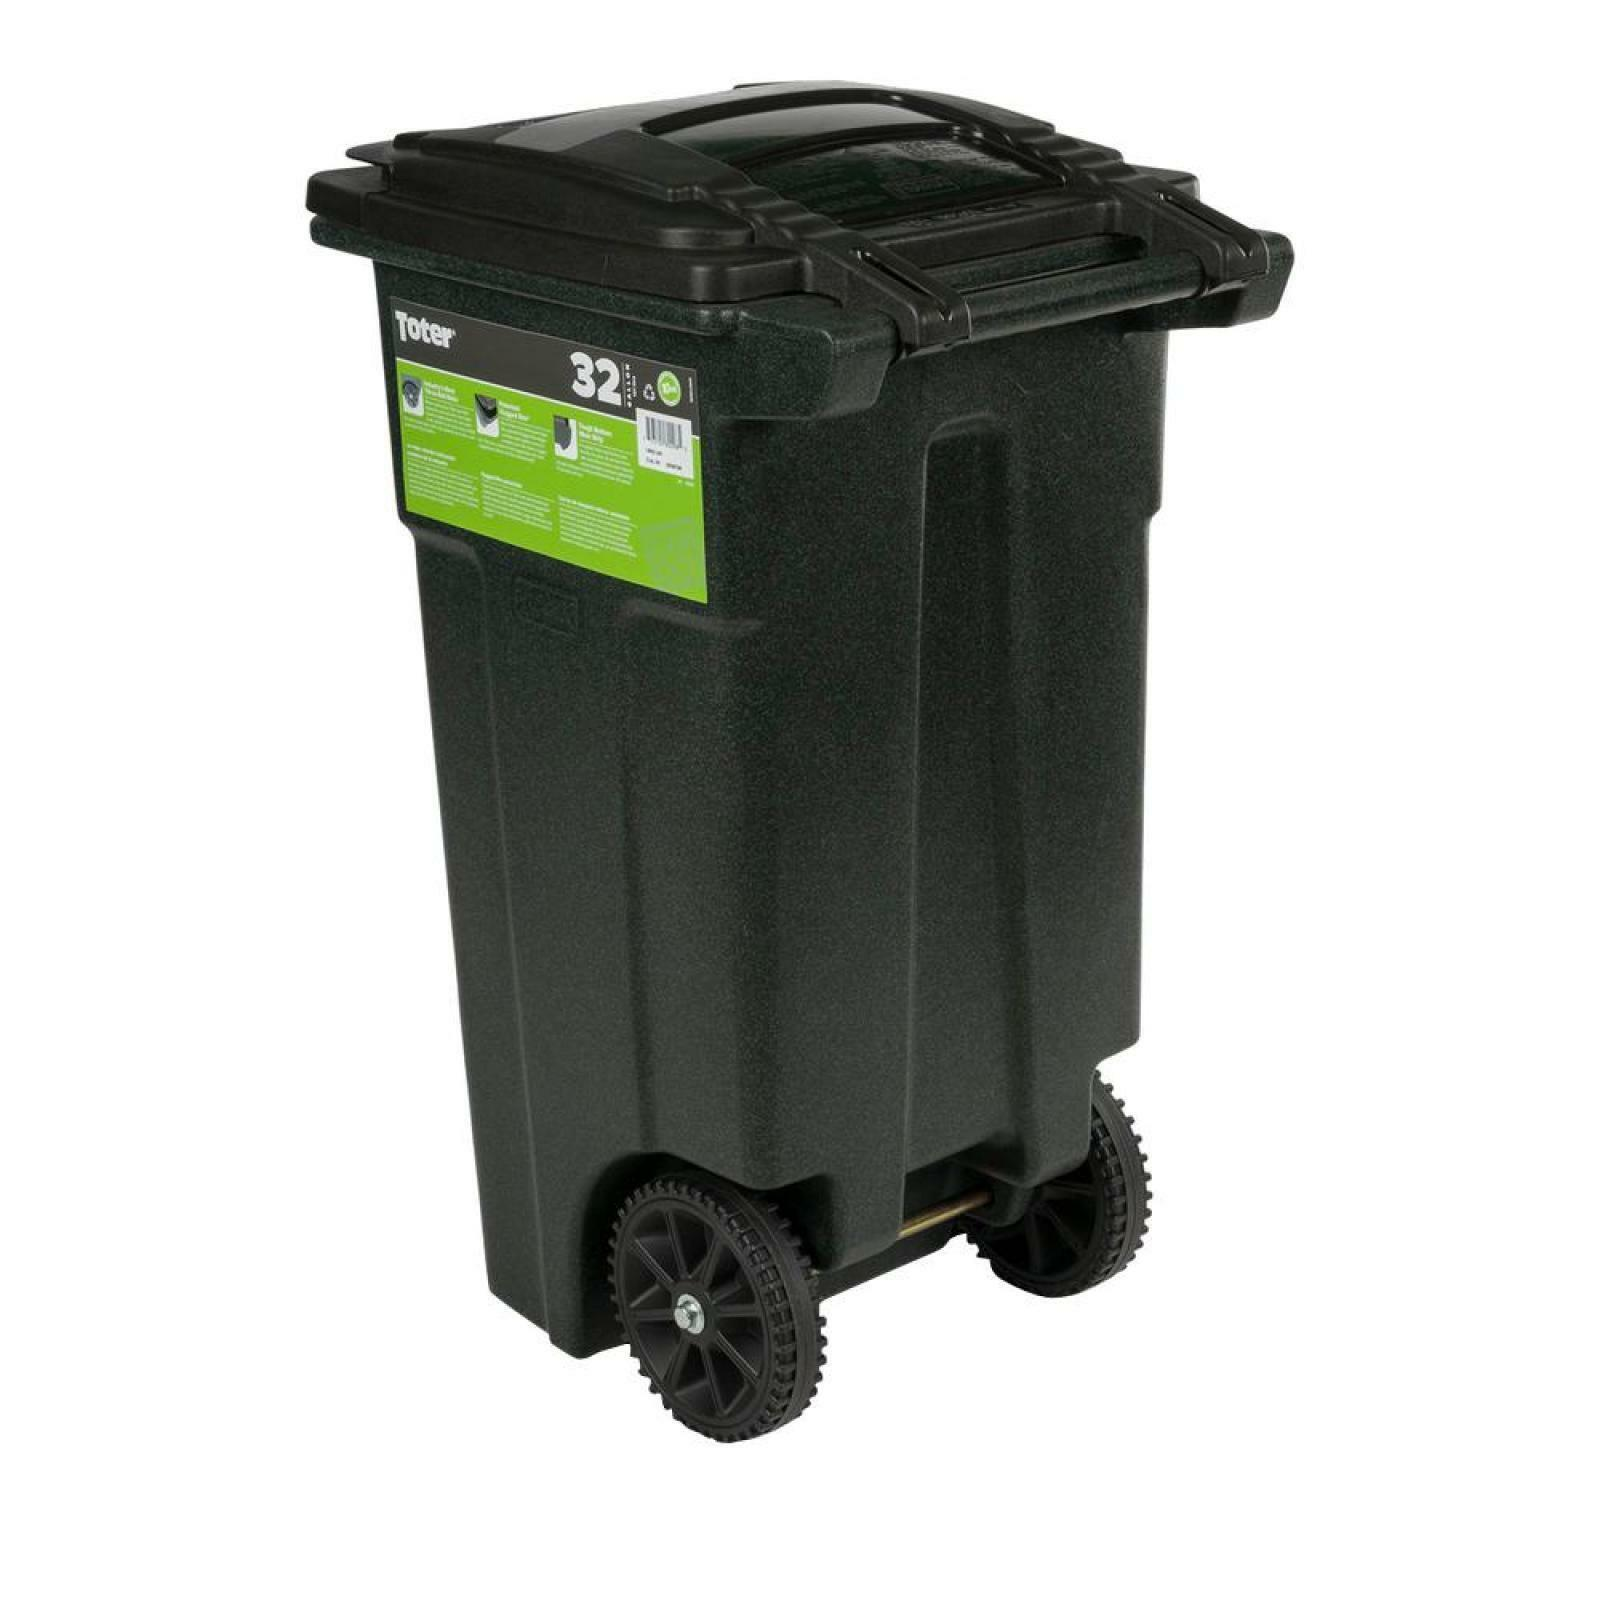 Green Trash Can with Wheels and Attached Lid Garbage Container Home 32 Gallon